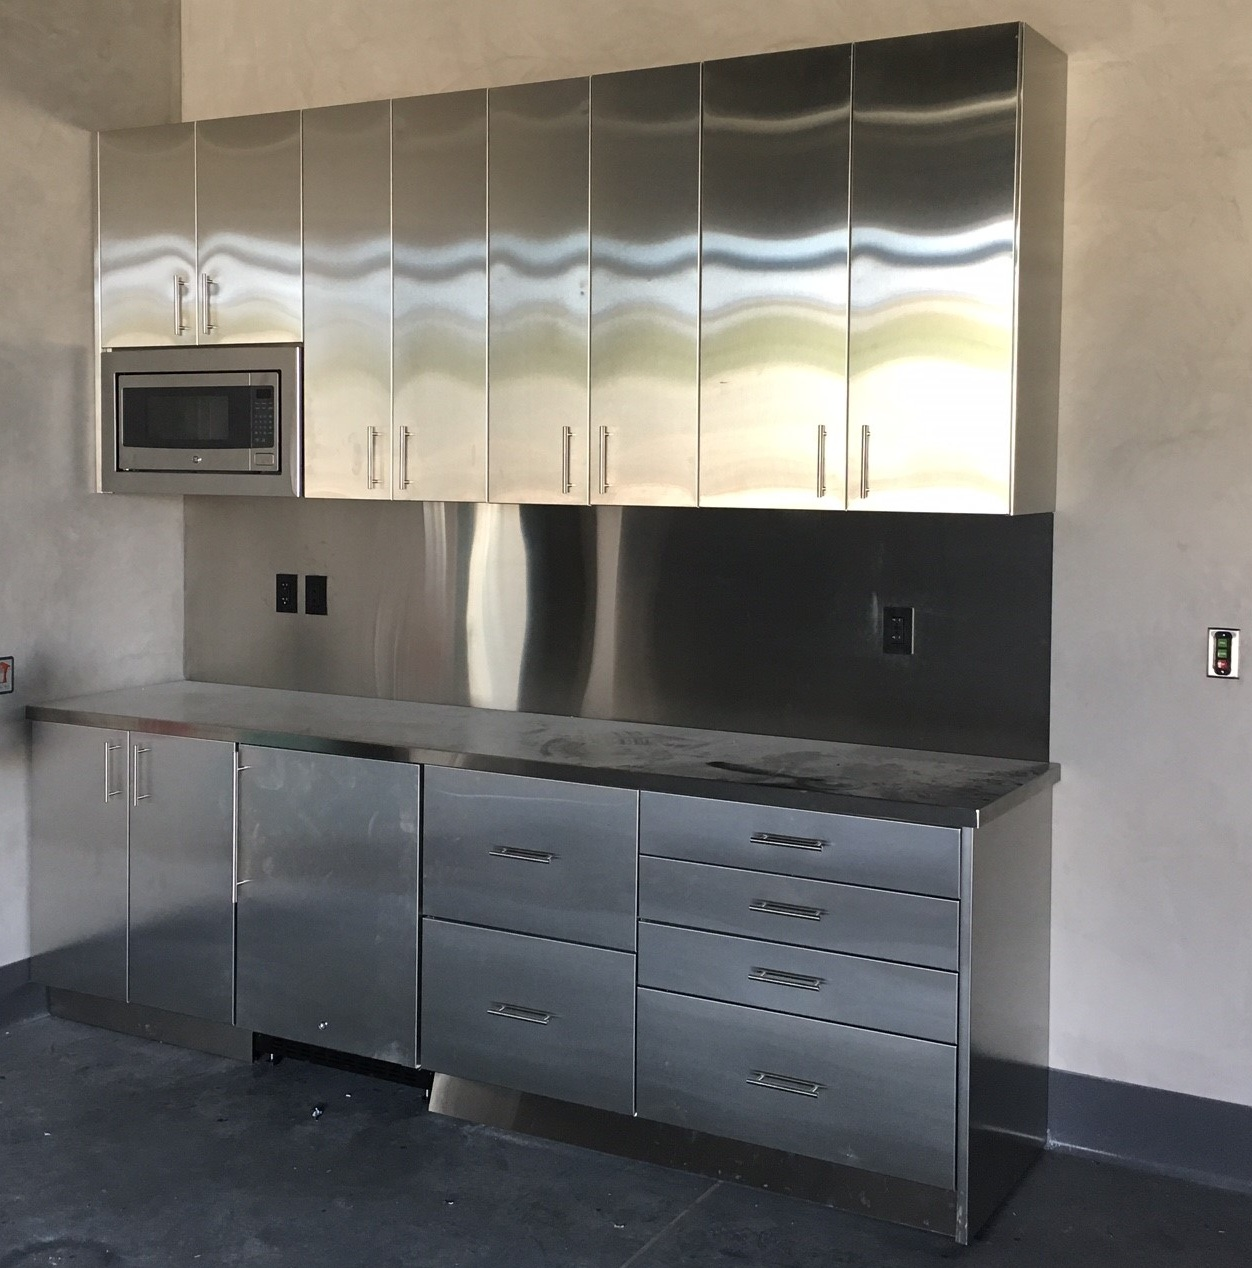 Commercial Kitchen Cabinets Stainless Steel commercial kitchen cabinets. | SteelKitchen